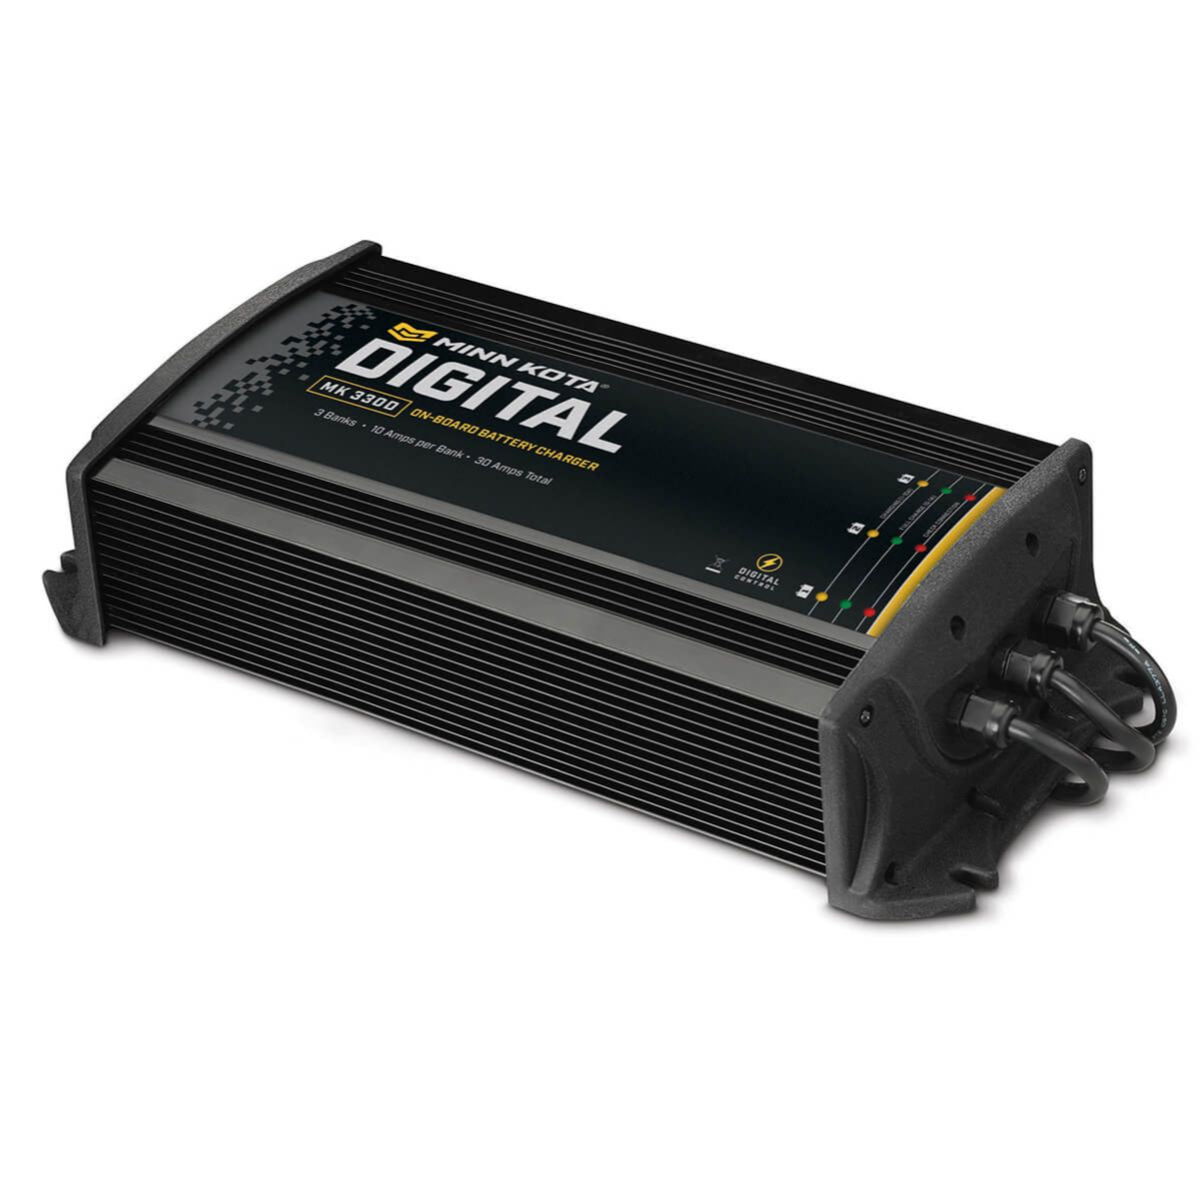 MK 330D 3 Bank x 10 Amps Digital Charger 1823305